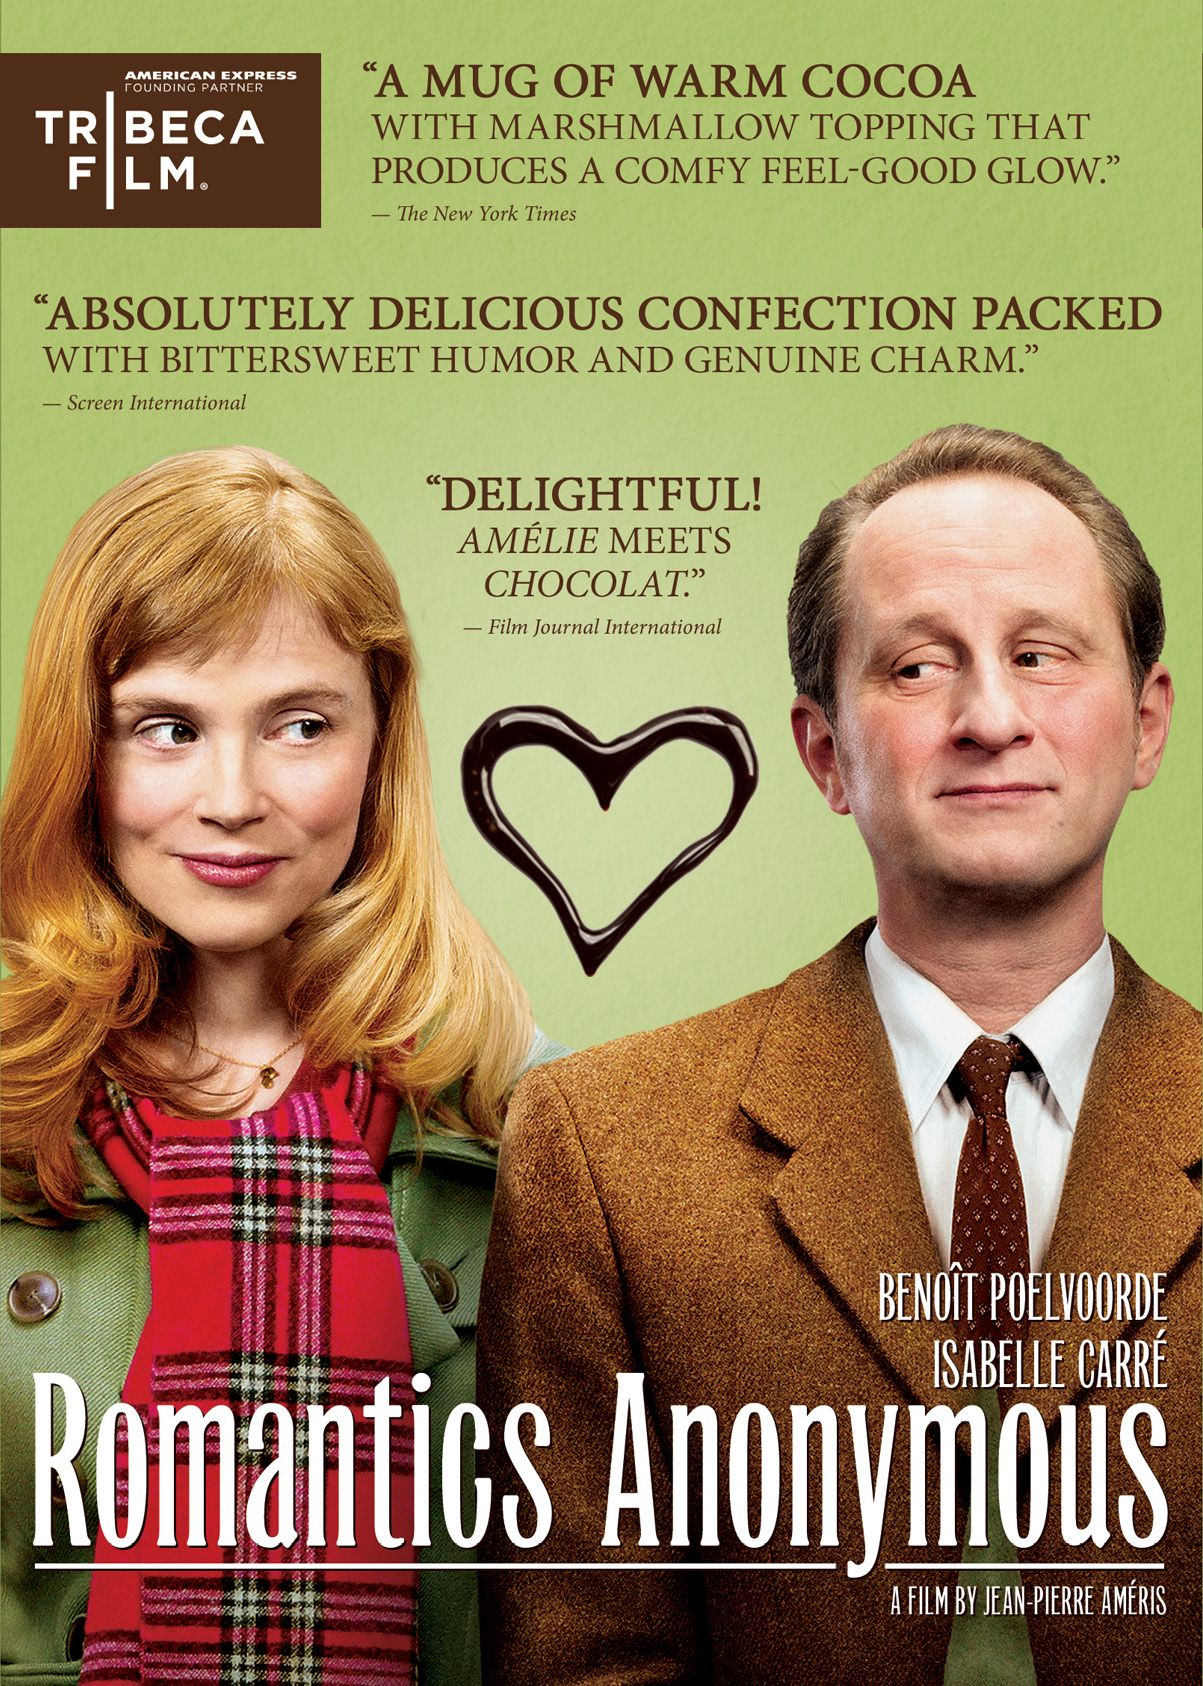 What a wonderful movie this is! A must watch for anyone who loves movies.